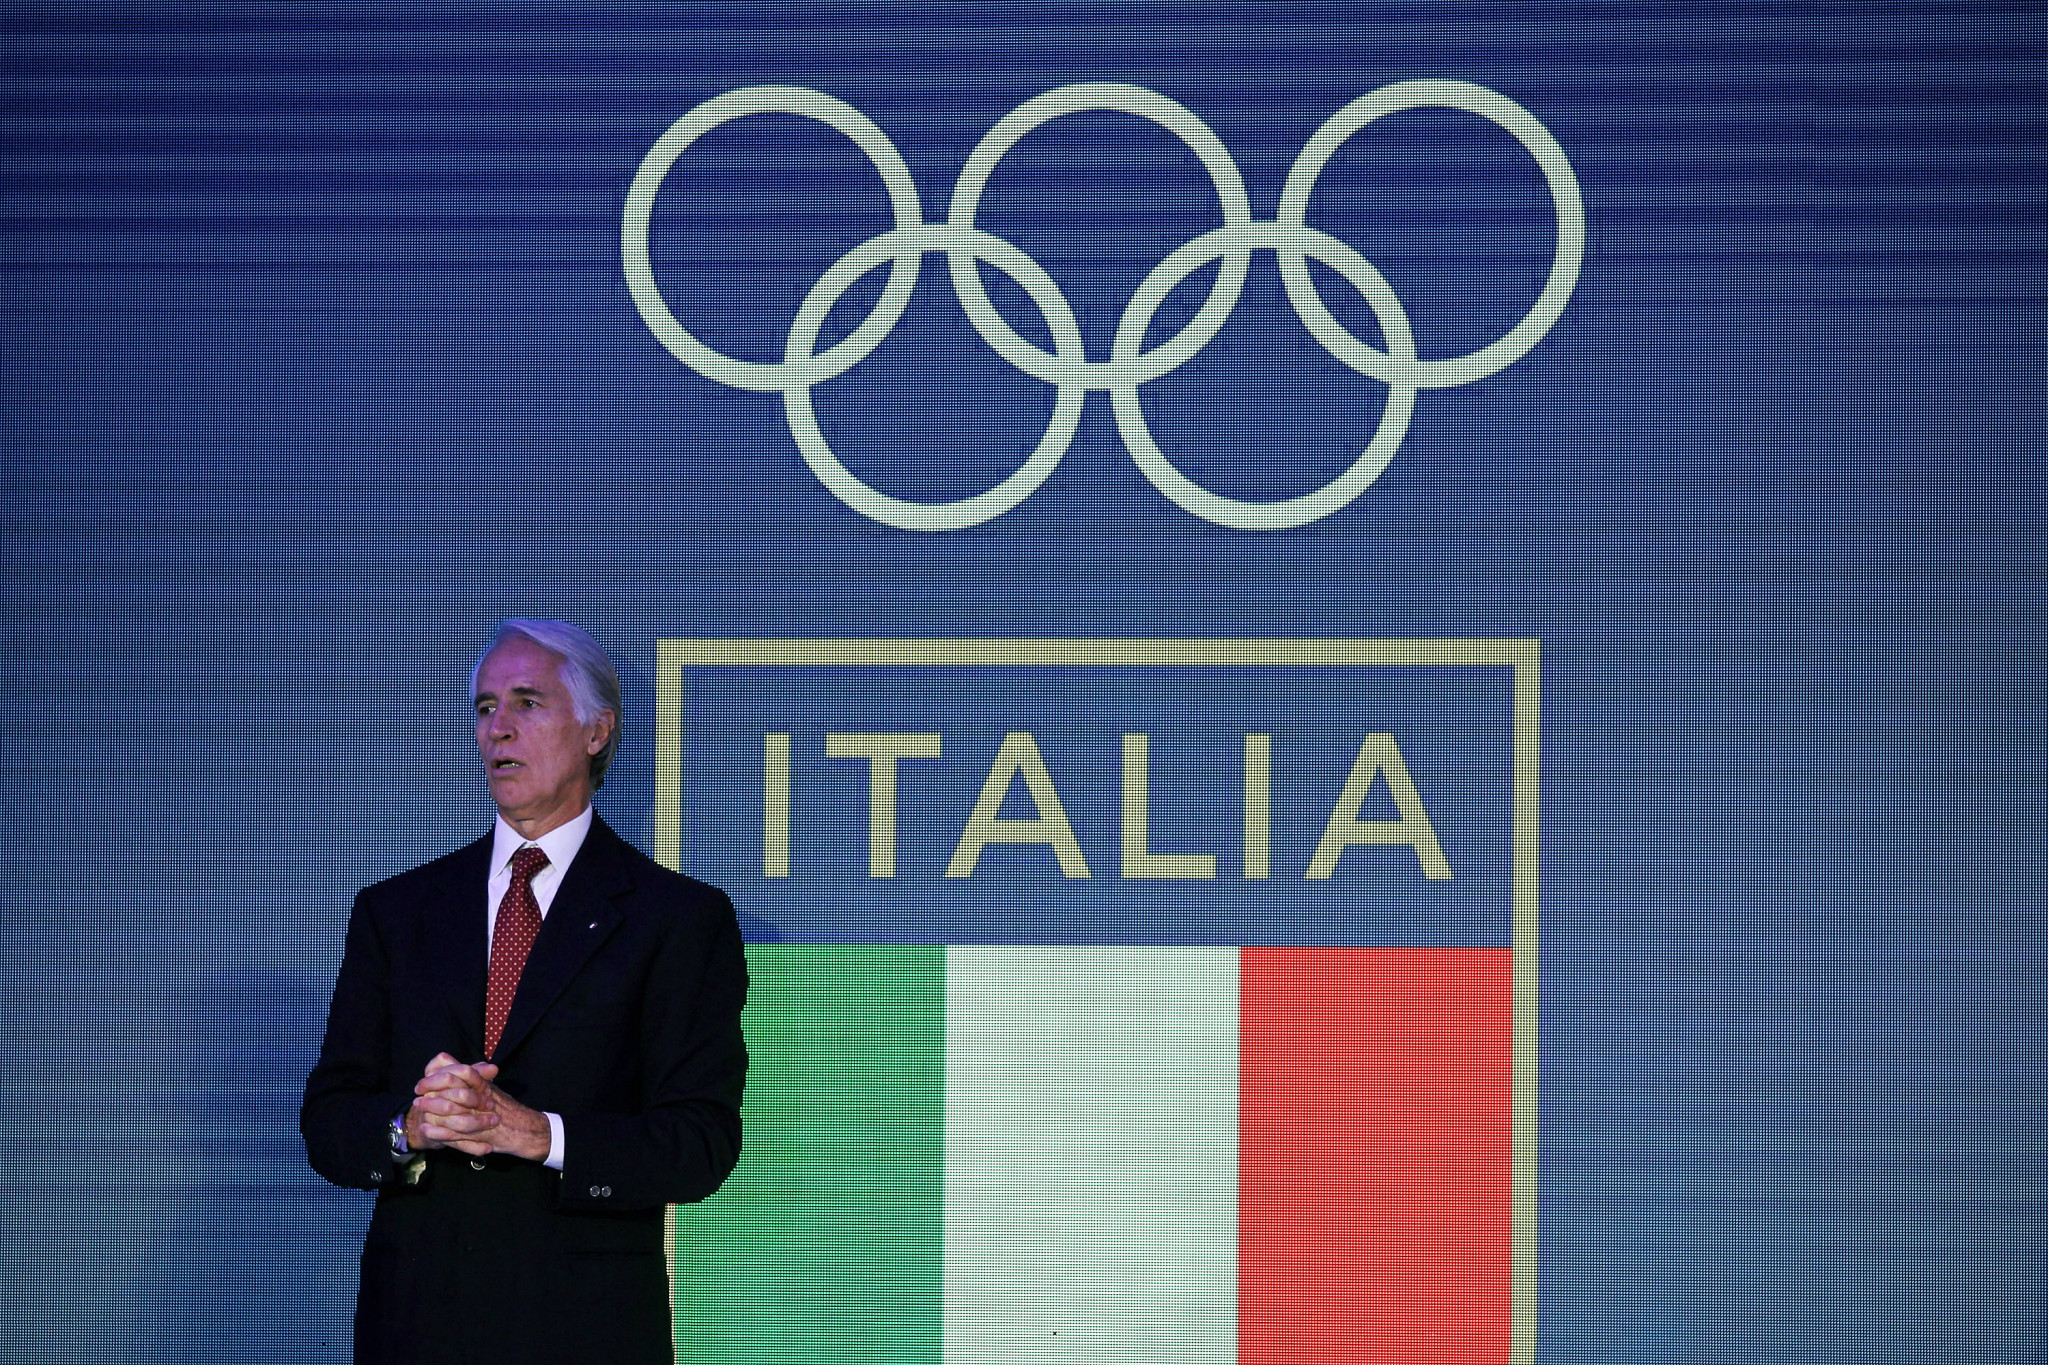 CONI and its President Giovanni Malagò will make a final decision between Milan, Turin and Cortina d'Ampezzo ©Getty Images